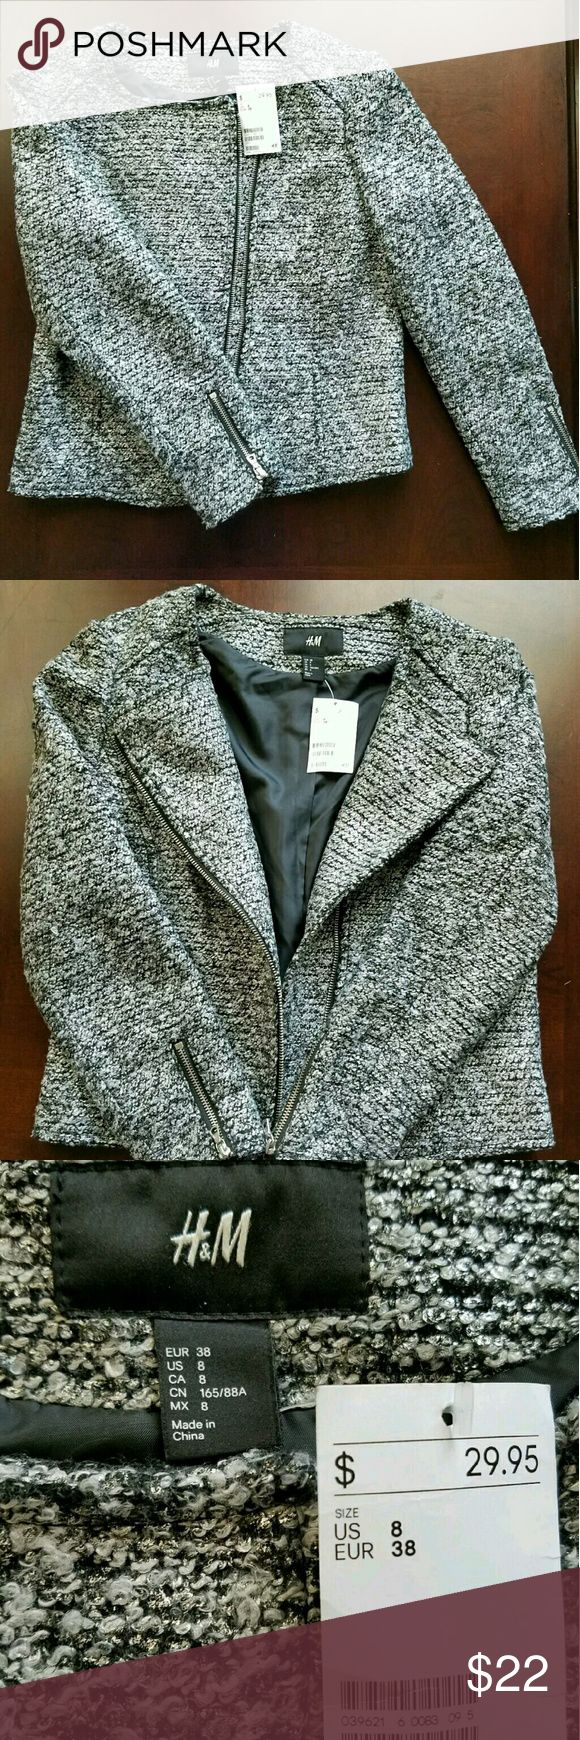 H&M Jacket Size 8 H&M womans Tweed/leather Moto gray and black Jacket Size 8 new with tags  Comes from smoke and pet free home. H&M Jackets & Coats Blazers